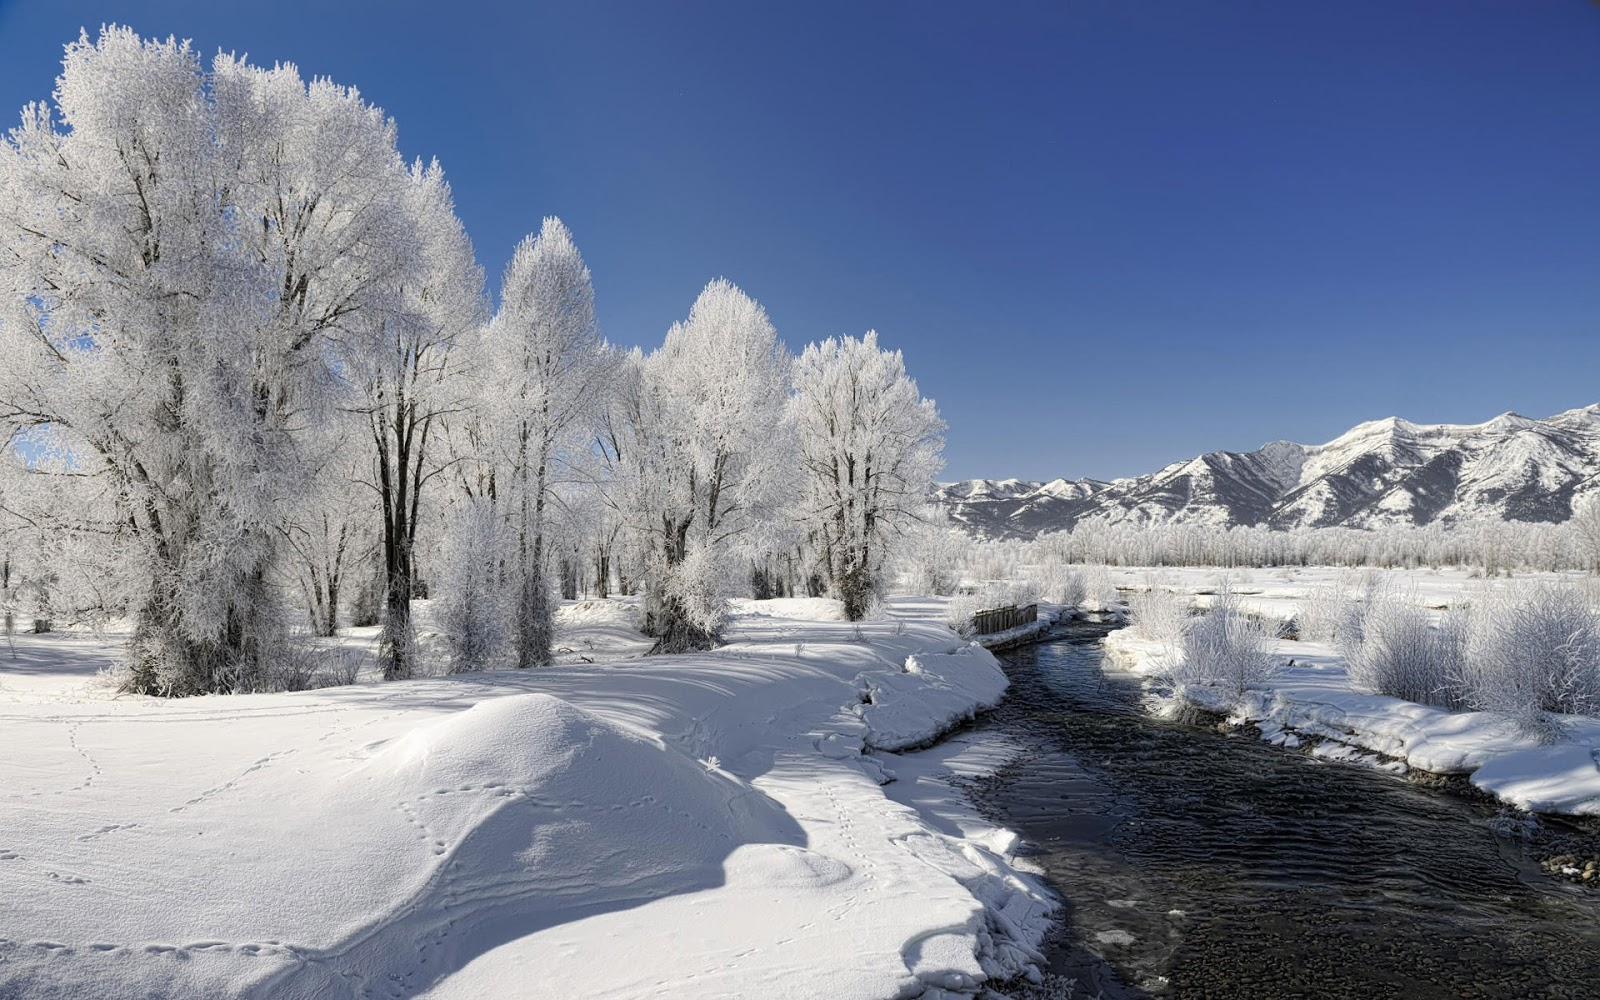 Winter Wallpaper Photos Beautiful Winter Wallpapers Beauty of Winter season Nature